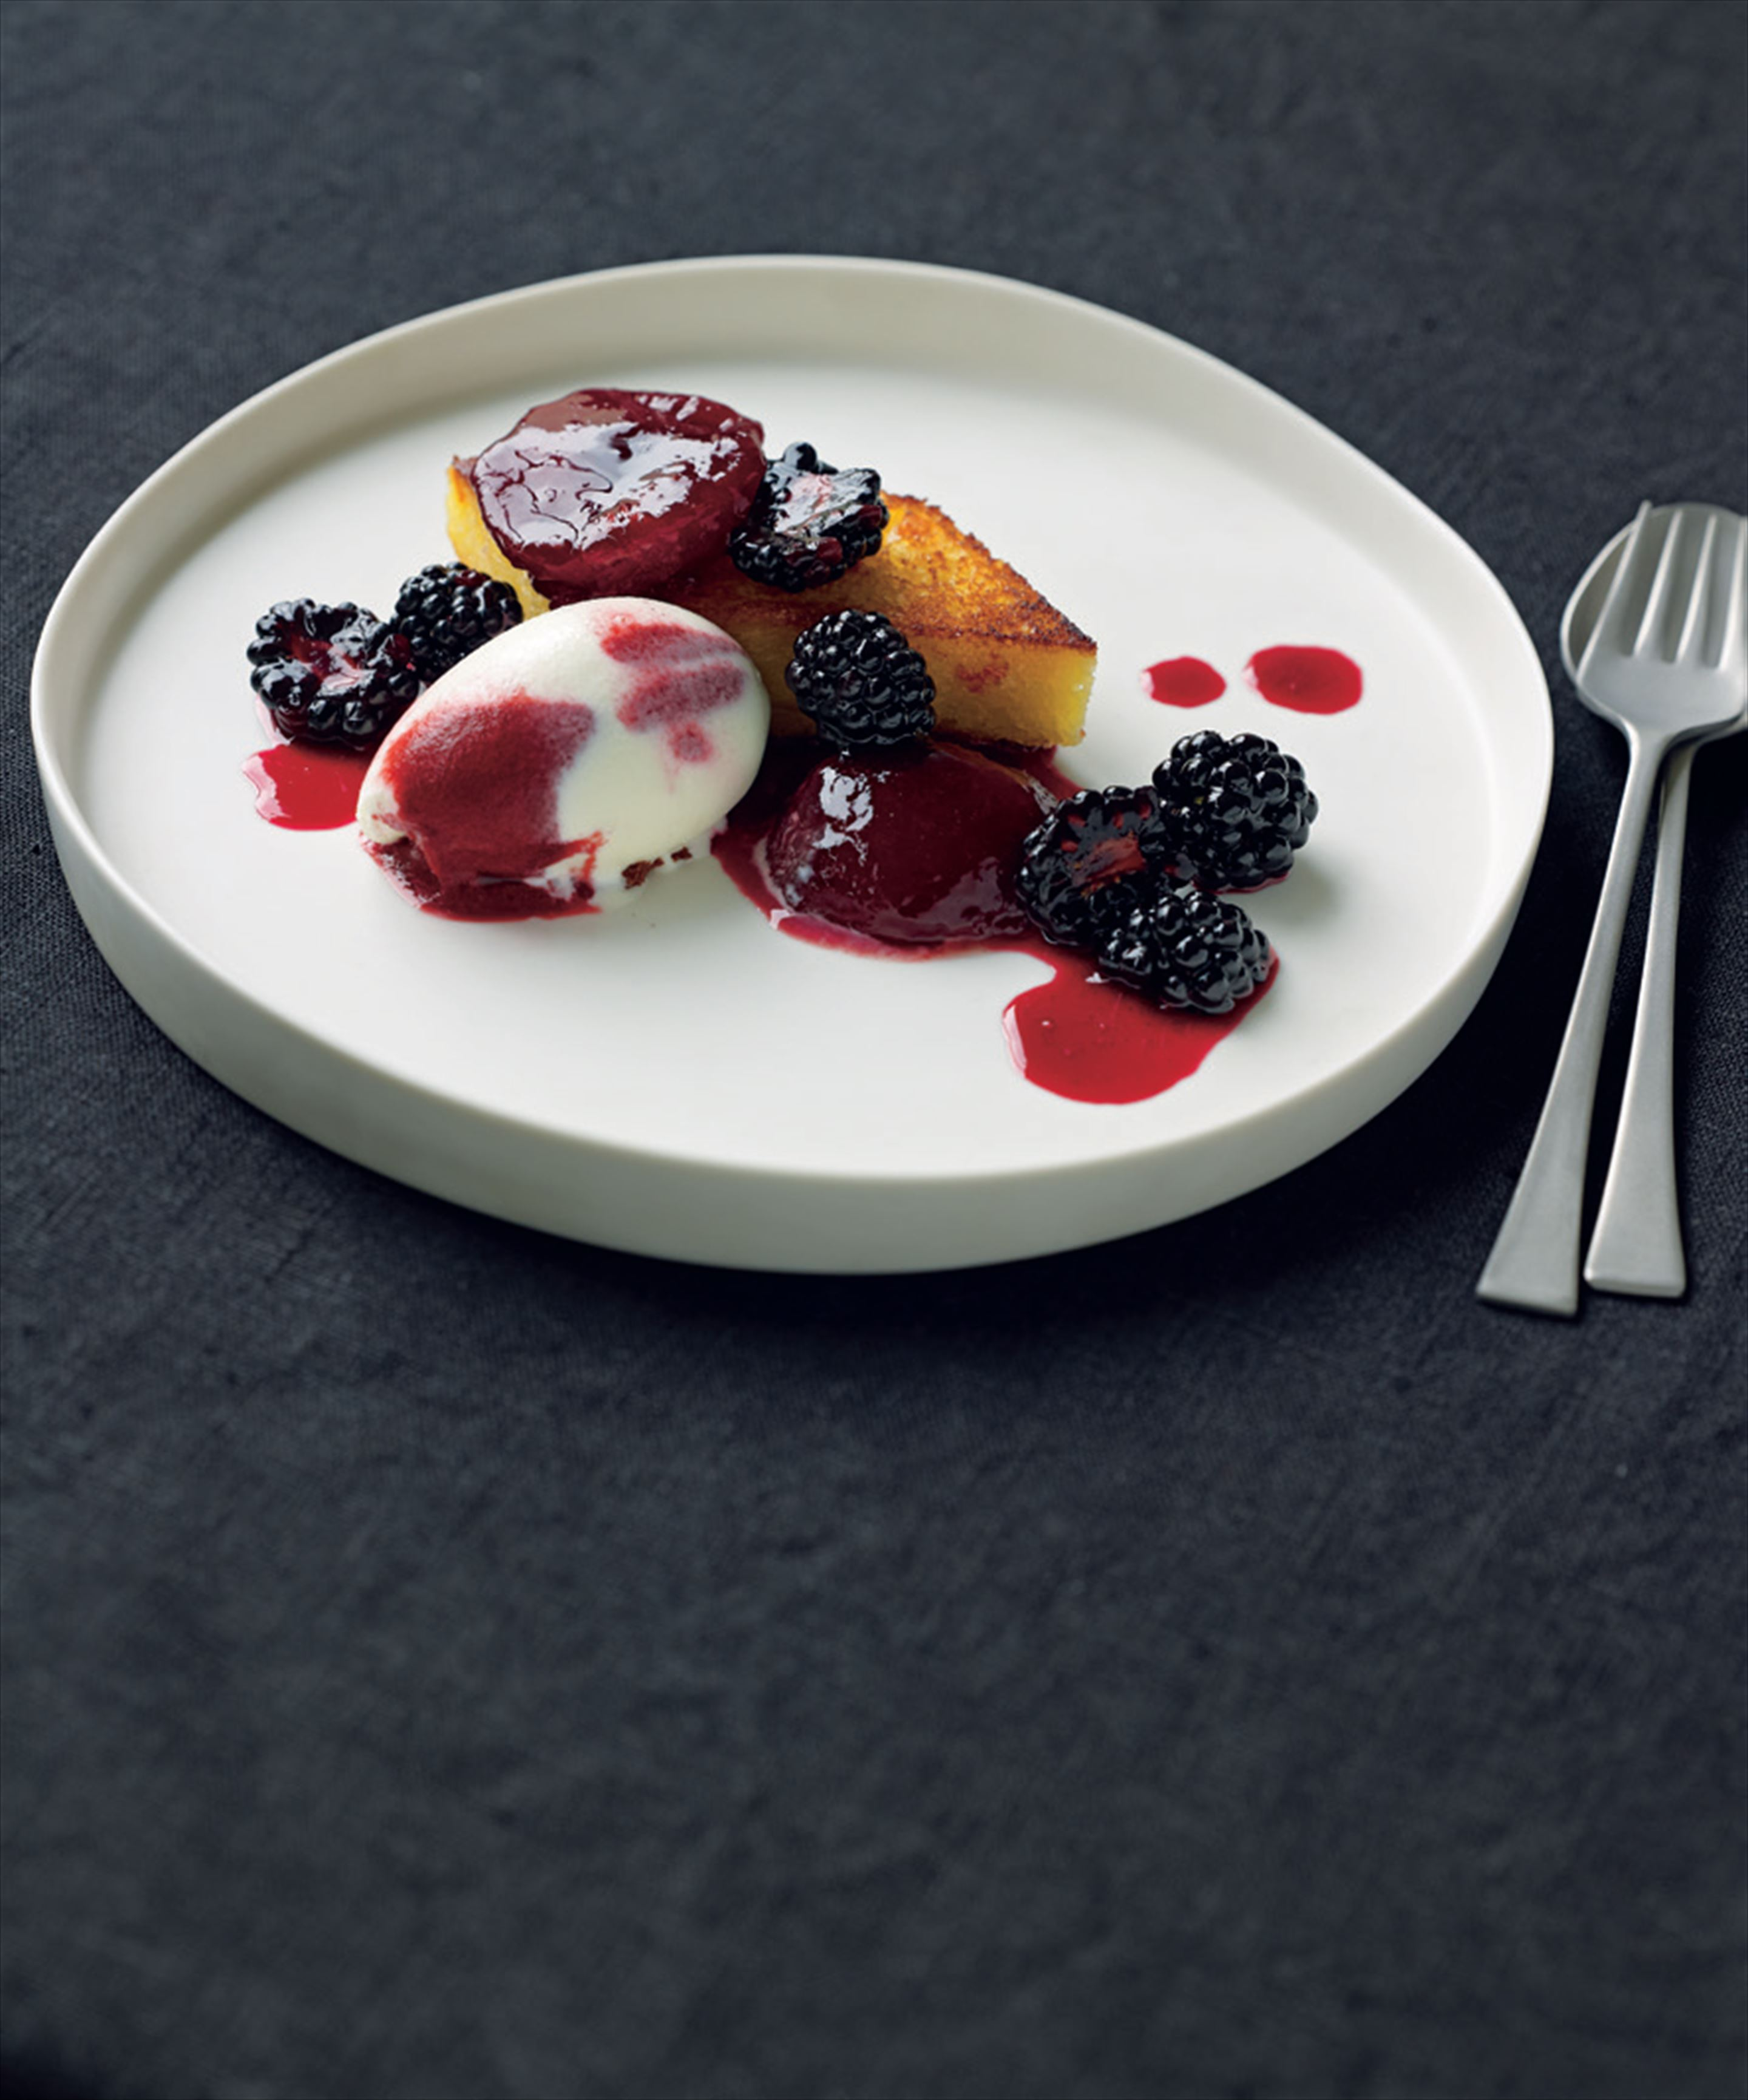 Pain perdu with blood plum and blackberry and yoghurt sorbet